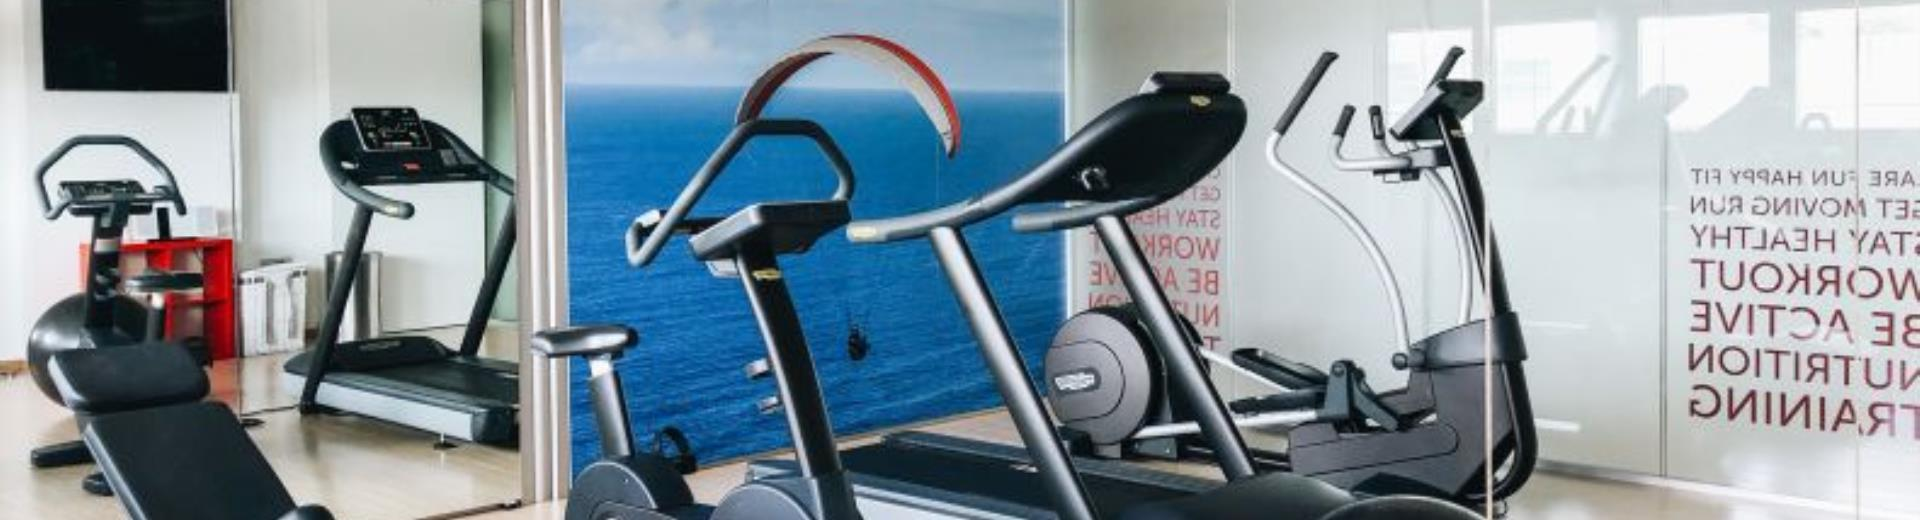 Modern fitness center fully equipped and available 24h